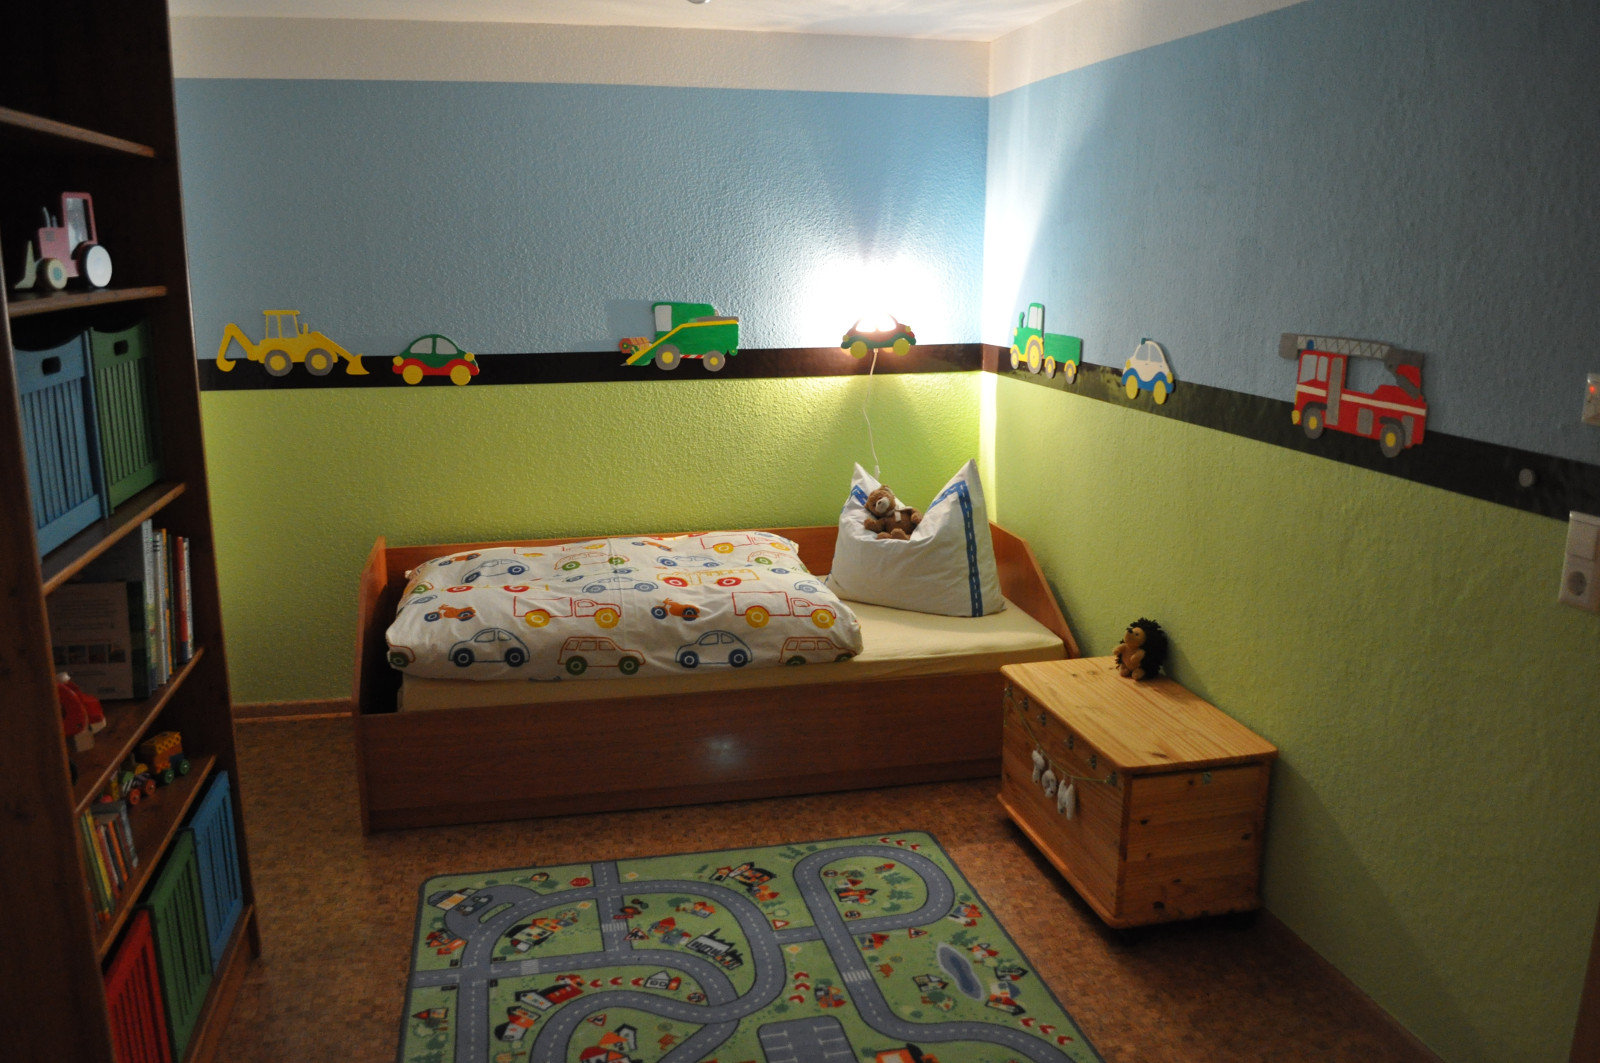 bewegliches wandbild f rs kinderzimmer. Black Bedroom Furniture Sets. Home Design Ideas